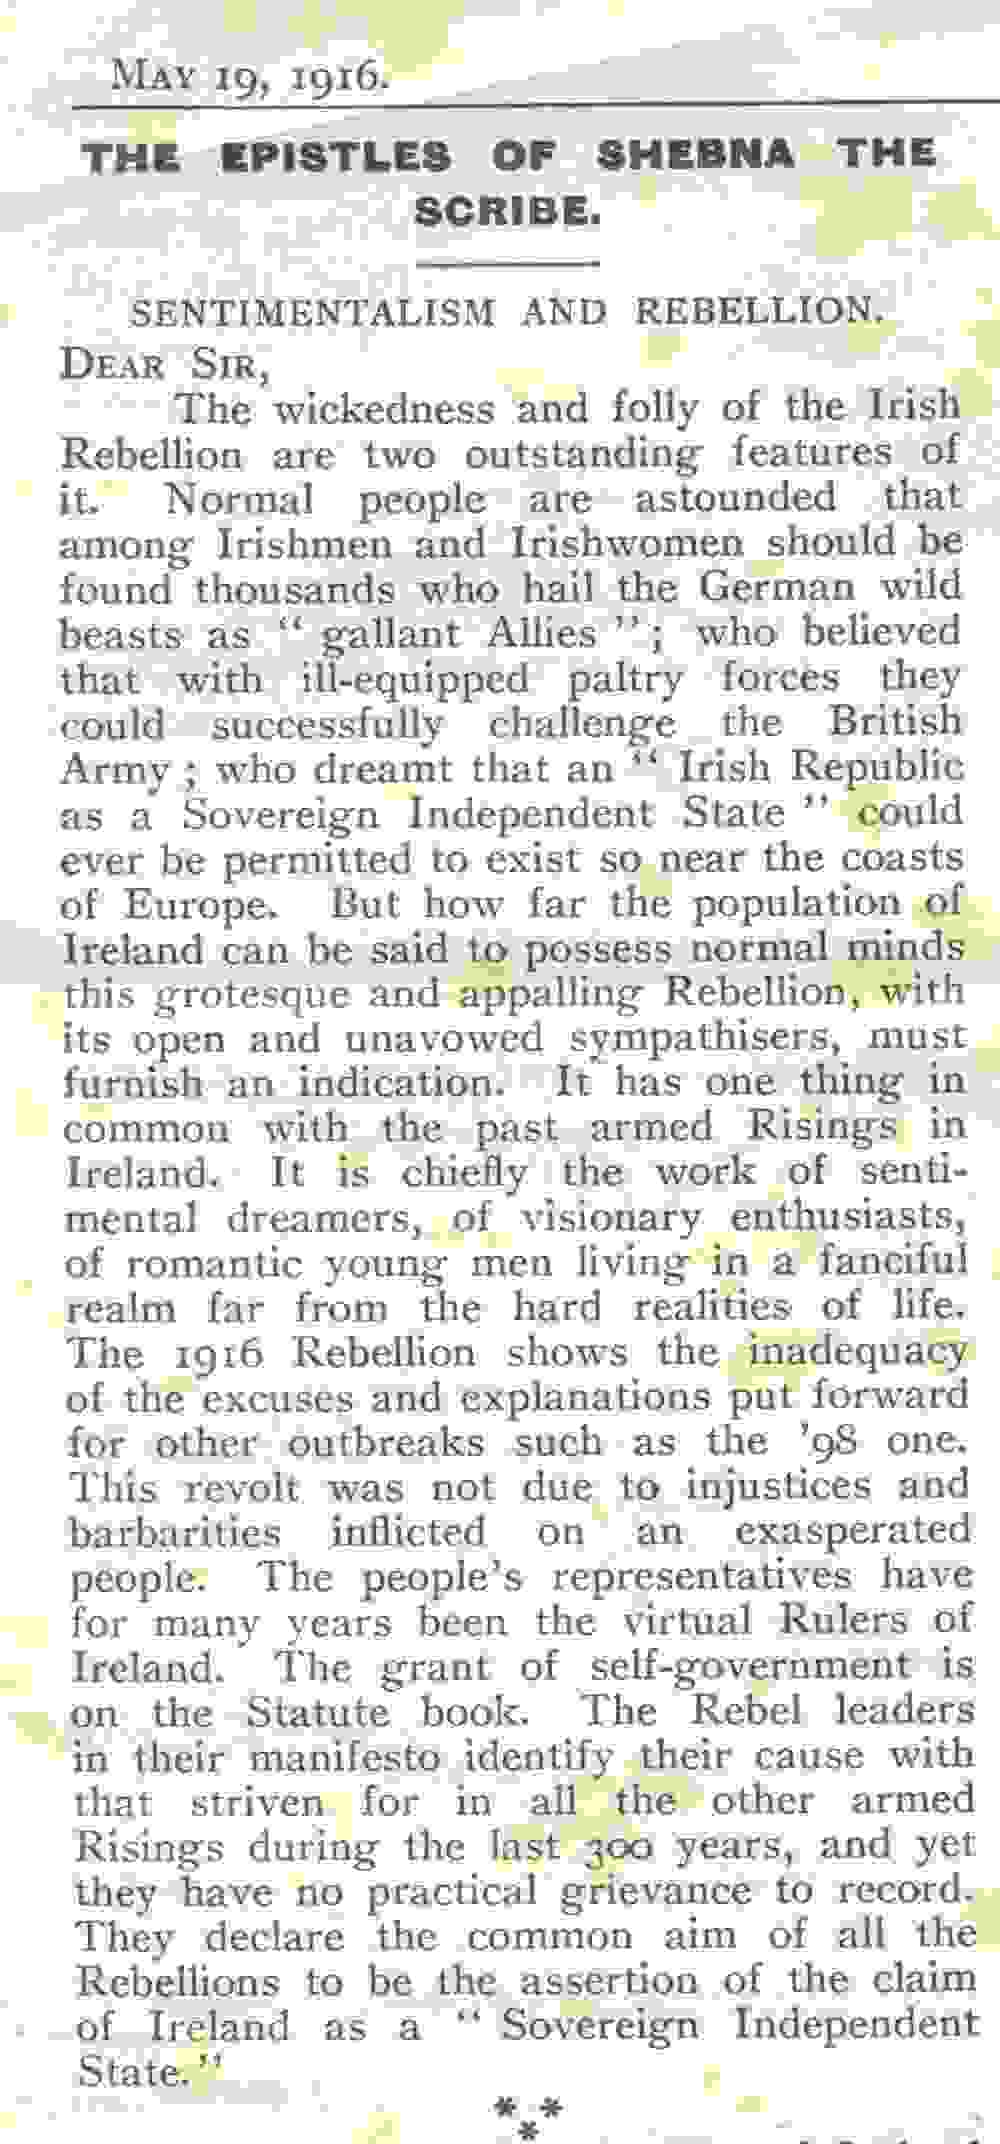 'Sentimentalism and Rebellion', being the Epistle of Shebna the Scribe, as published in the Church of Ireland Gazette, 19 May 1916, RCB Library MS 813/4/3.